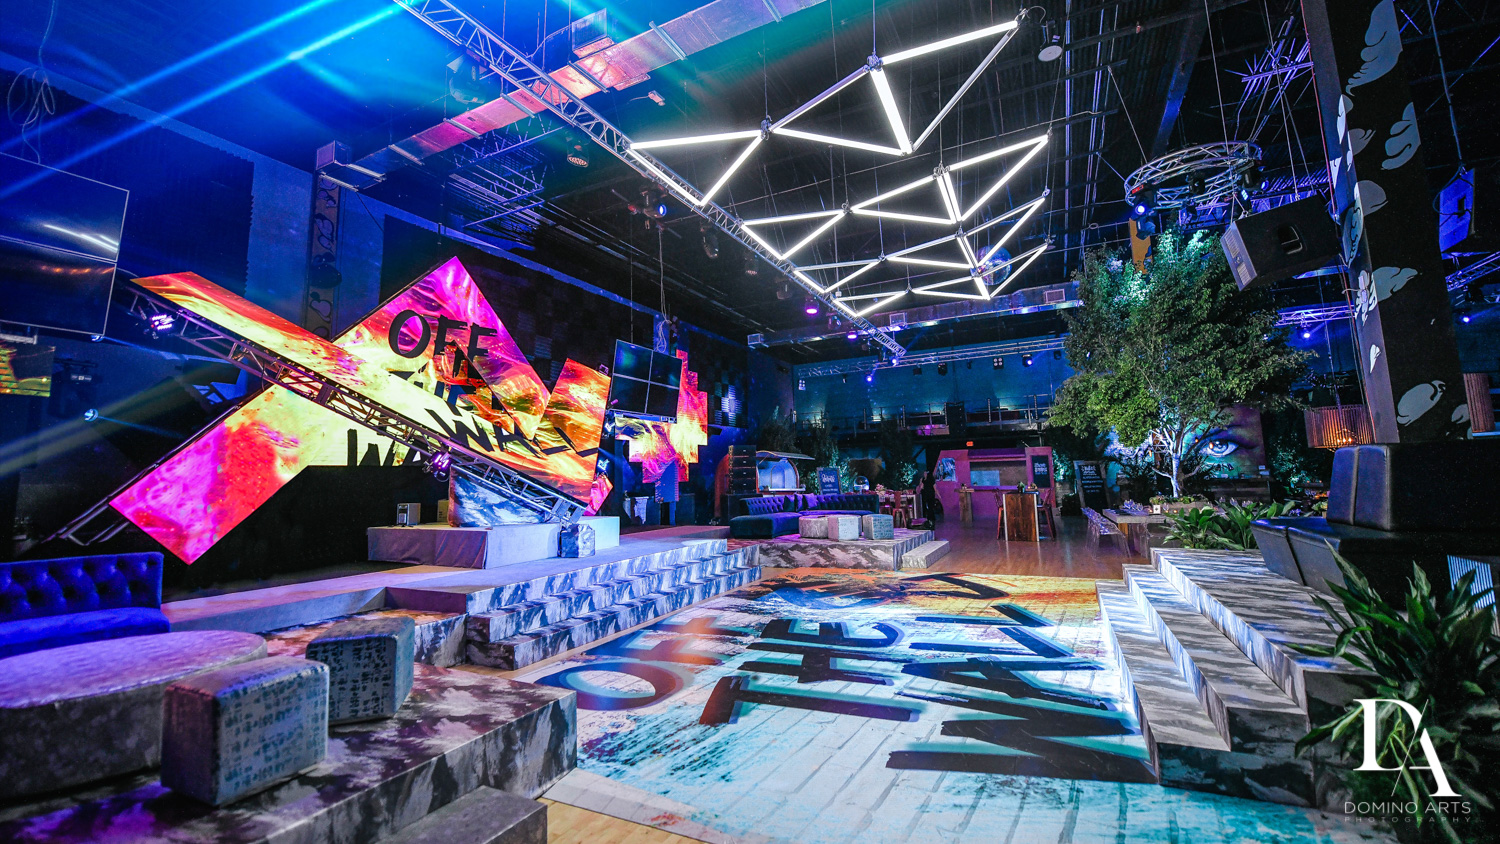 best party decor at Urban Graffiti BNai Mitzvah with celebrity Shaq at Xtreme Action Park by Domino Arts Photography